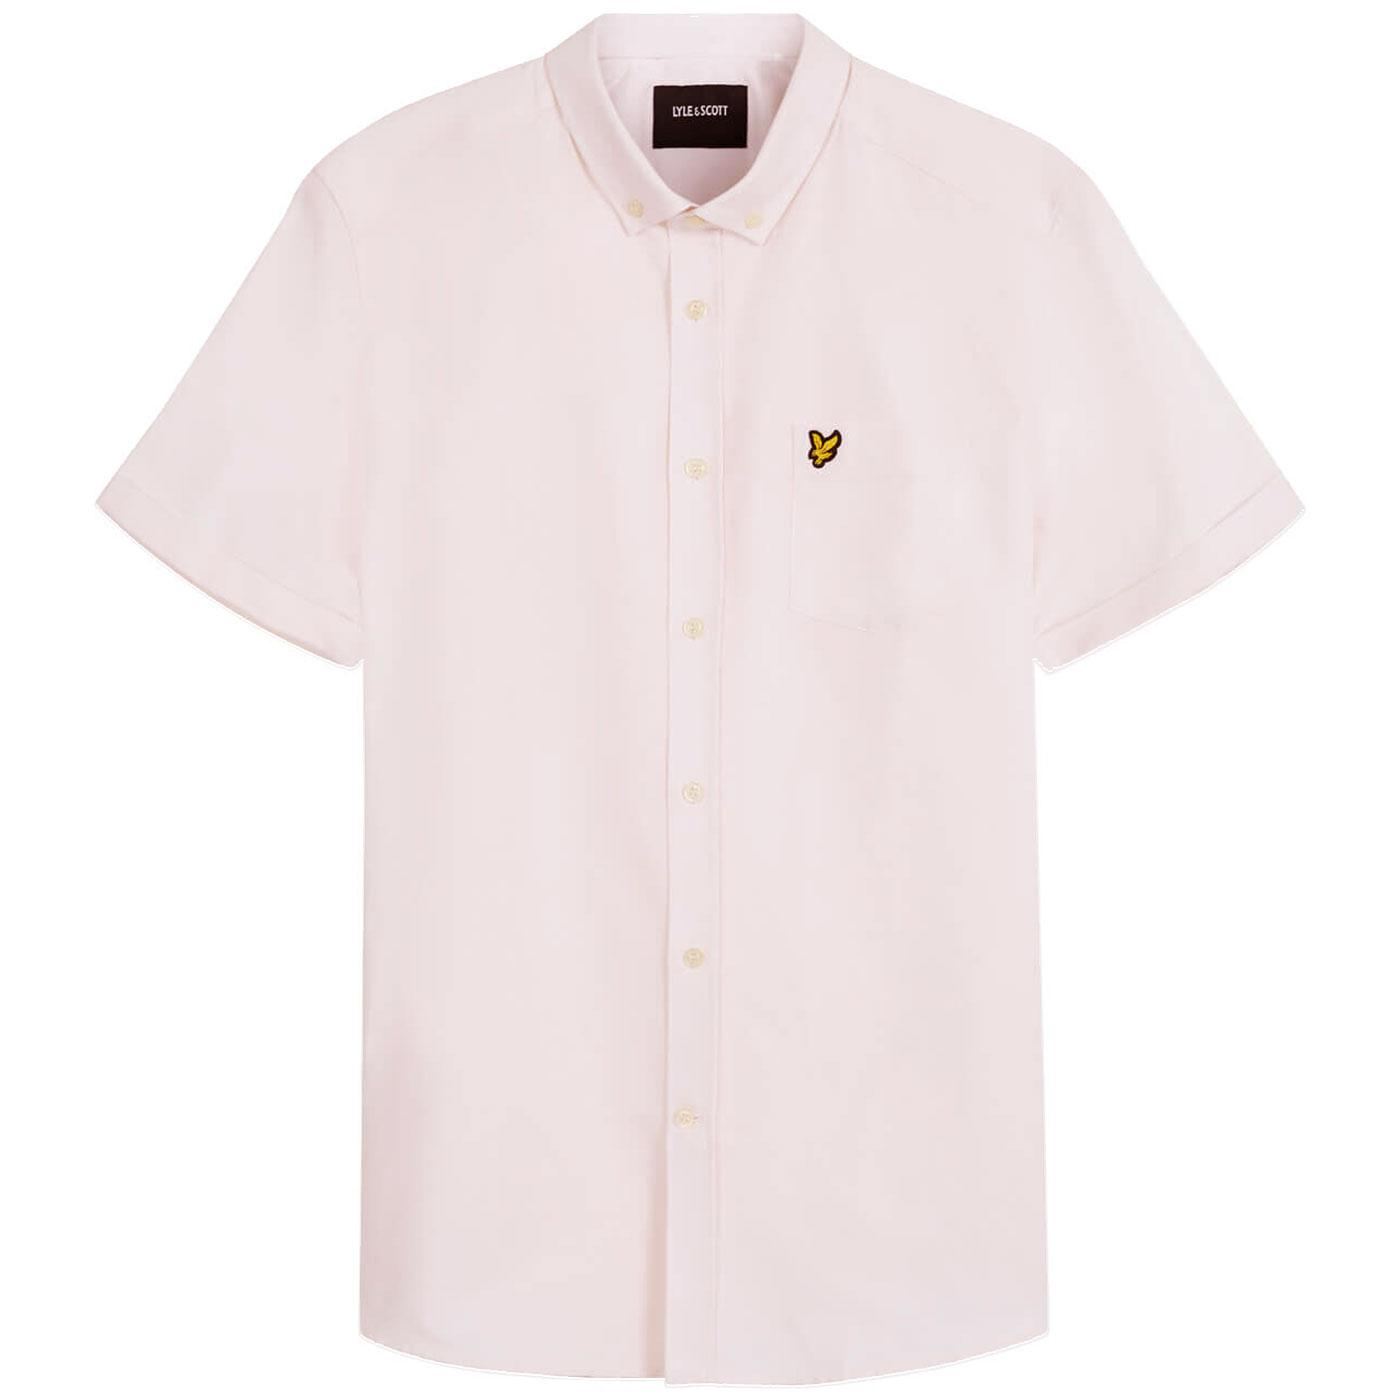 LYLE & SCOTT Mens Mod S/S Oxford Shirt STRAWBERRY